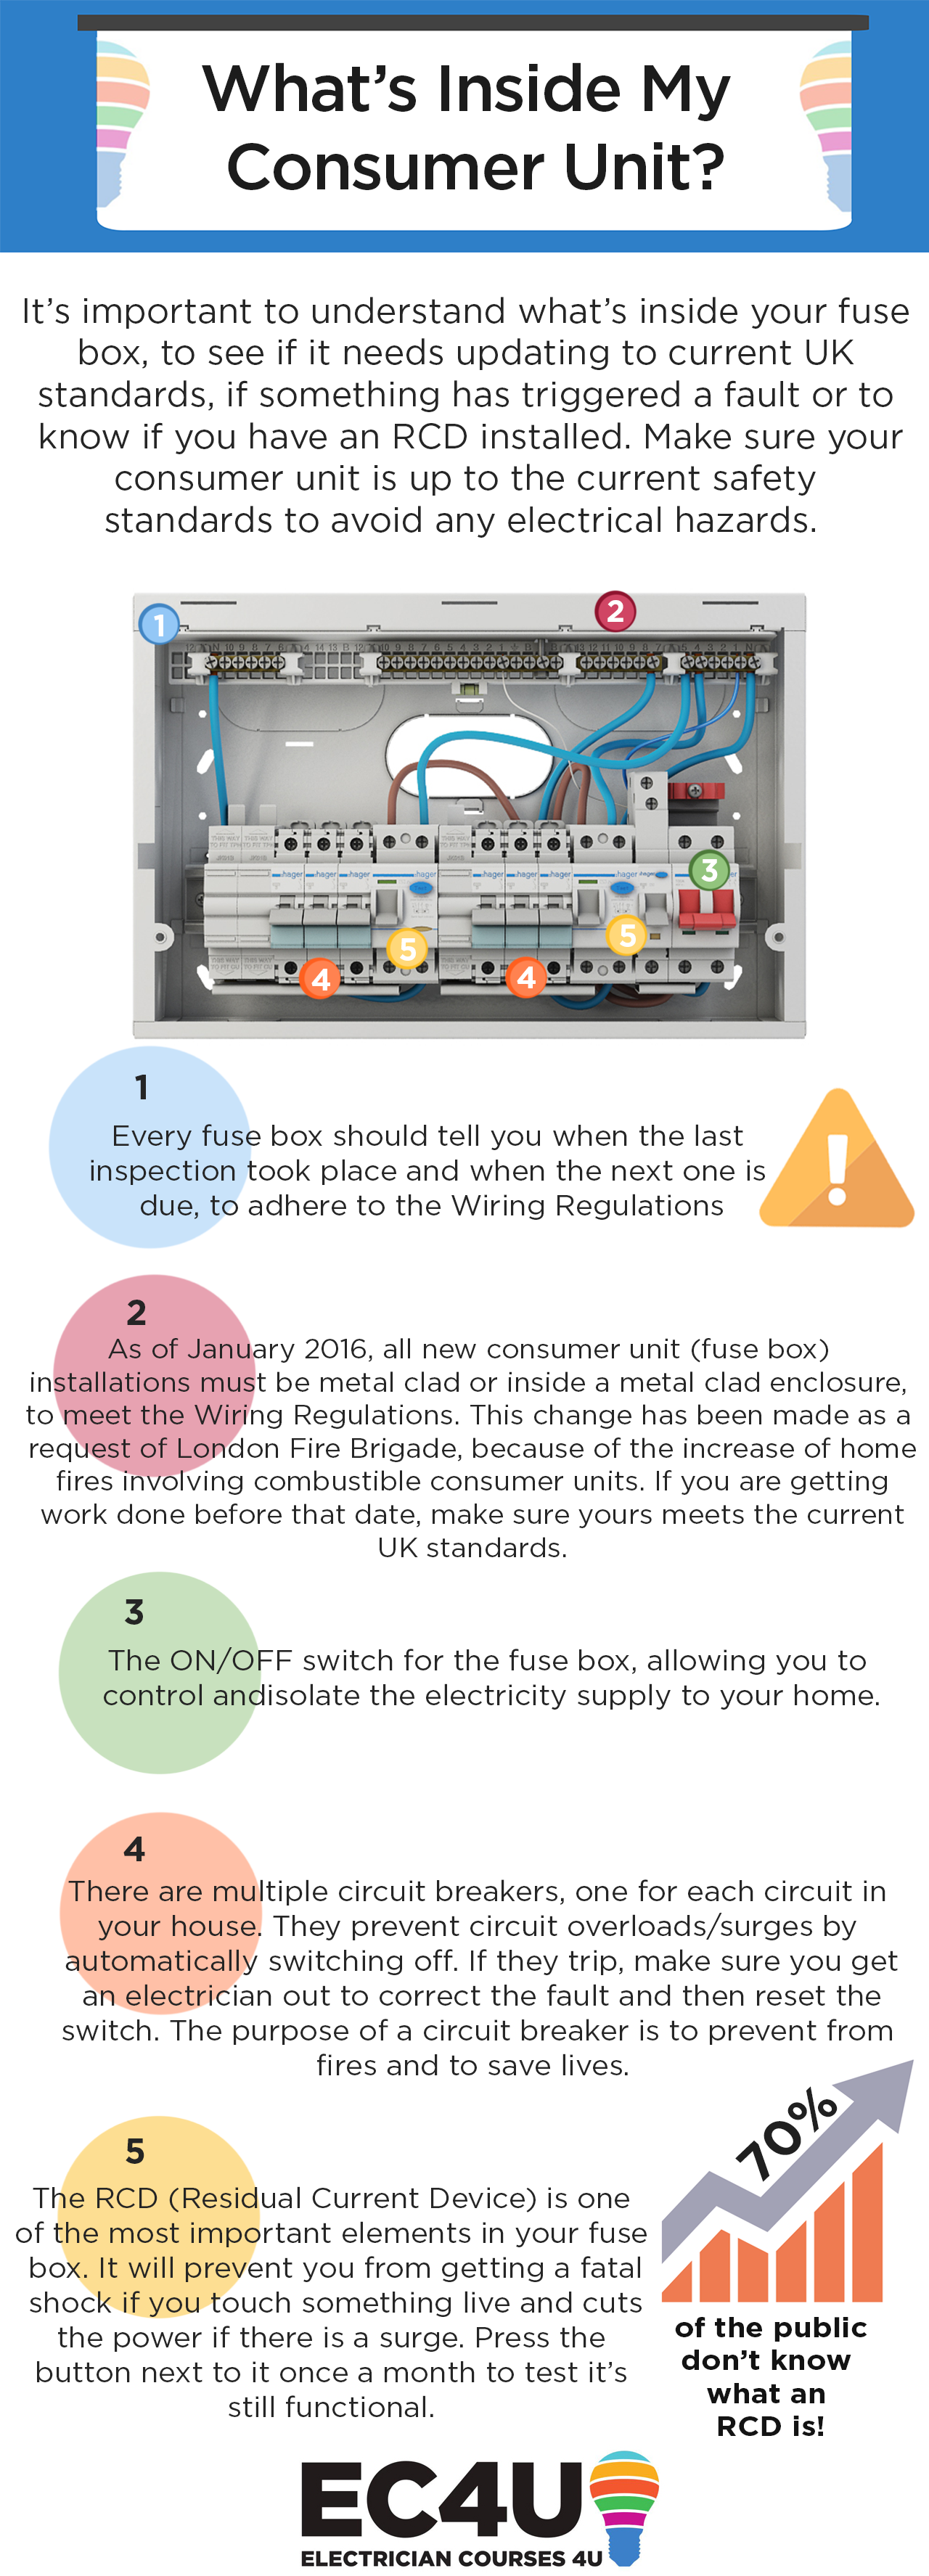 What To Expect From Your Registered Local Electrician Electrical Testing House Wiring Circuits Please Feel Free Share Our Whats Inside My Consumer Unit Infographic On Website By Simply Copying And Pasting The Embed Code Below